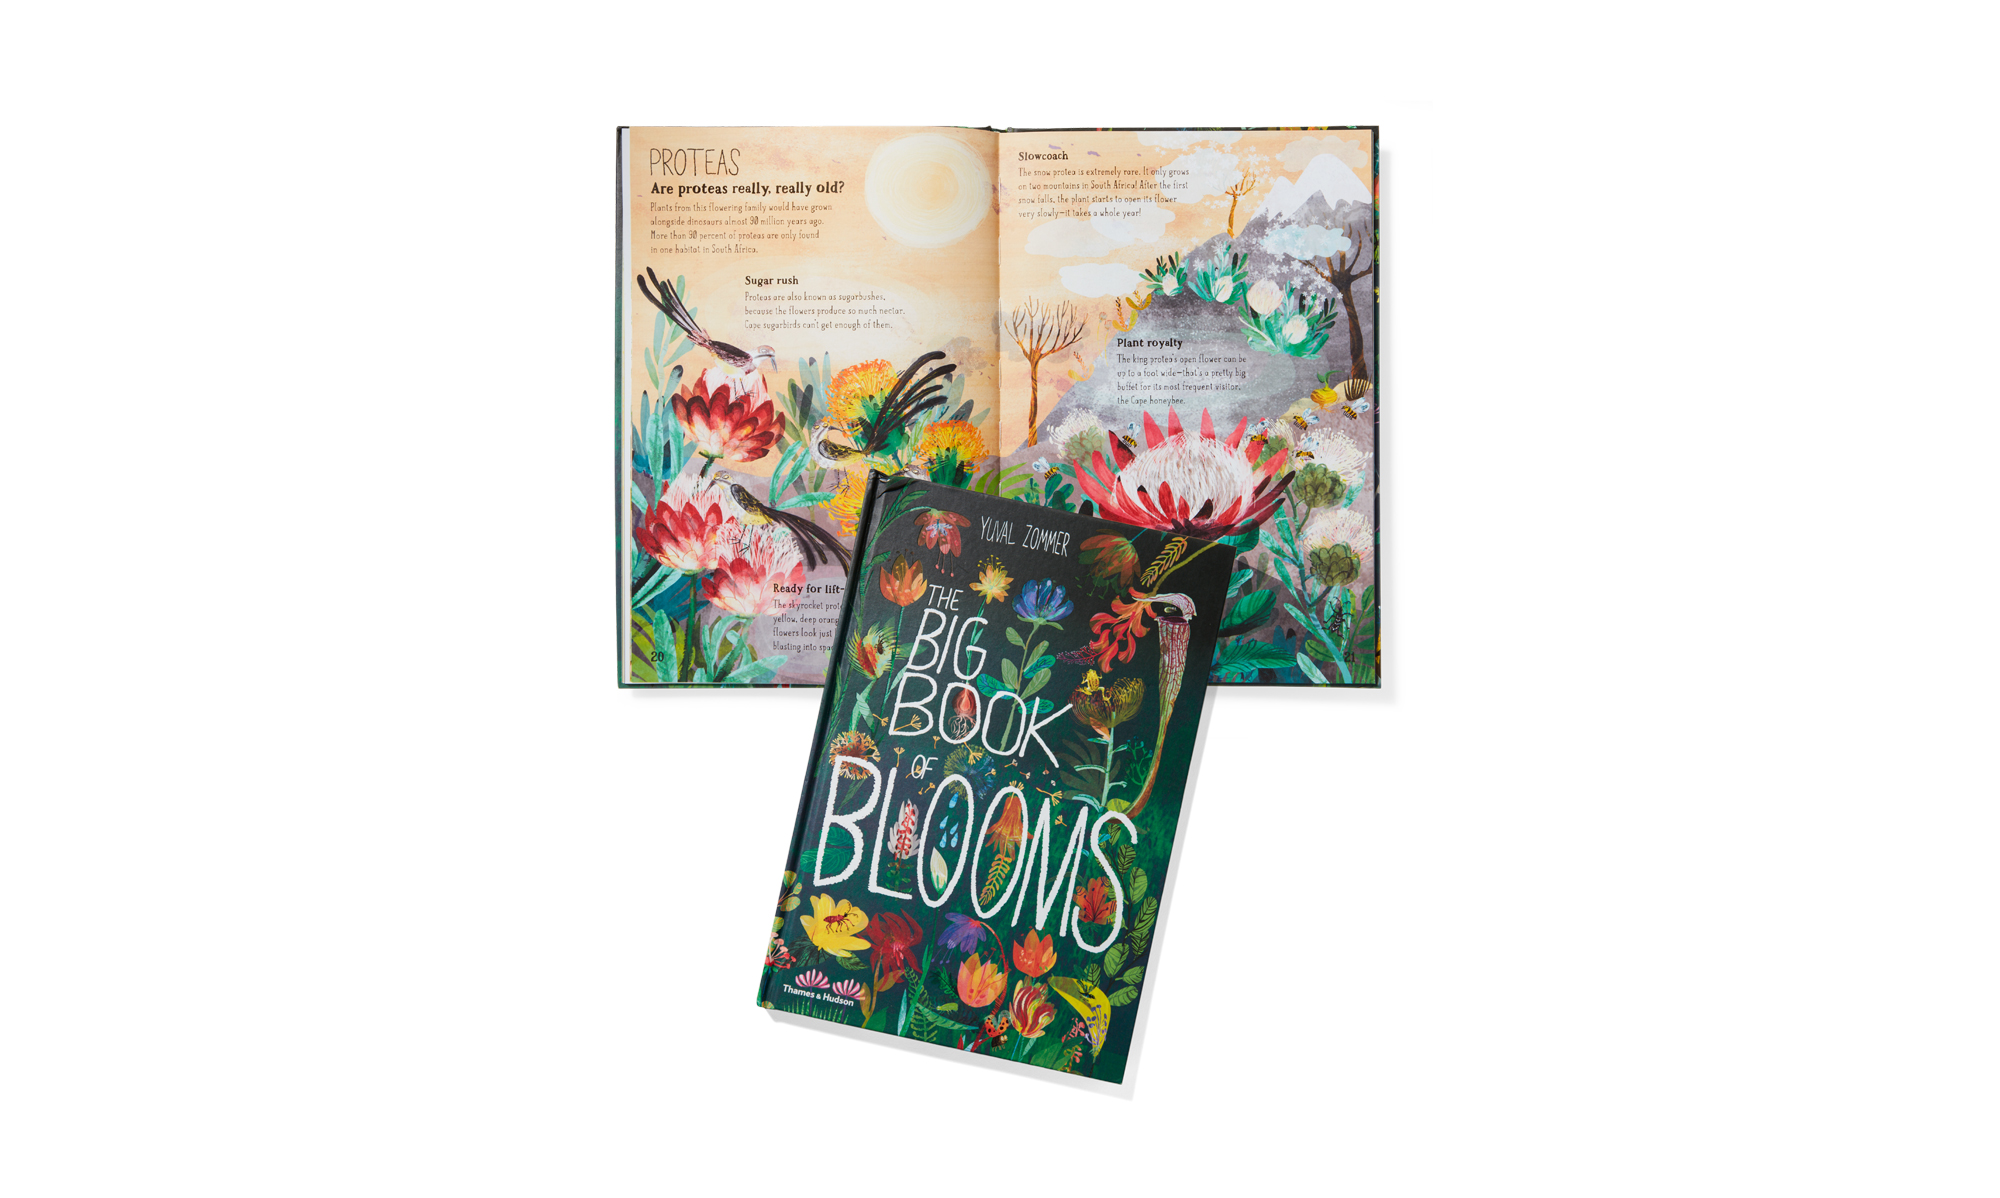 The Big Book of Blooms cover and open spread